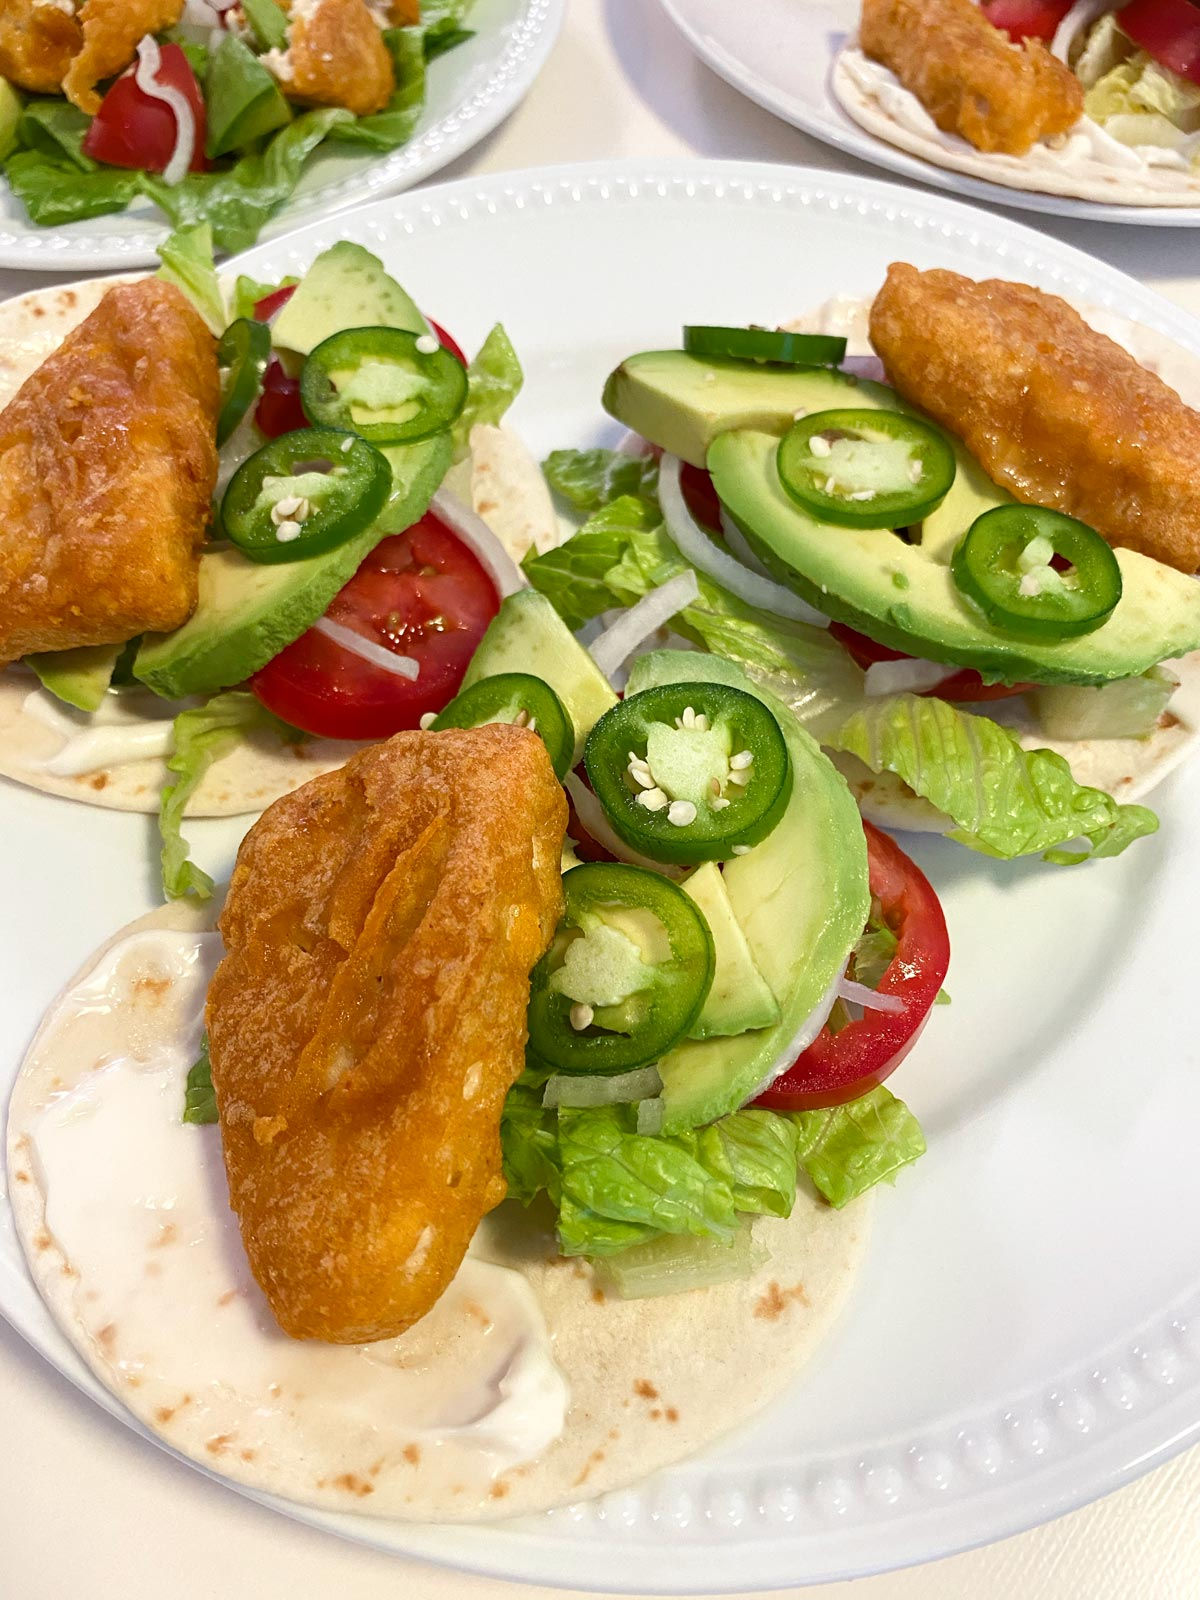 fishless tacos with lettuce, tomato, onion, jalapeno, and avocado